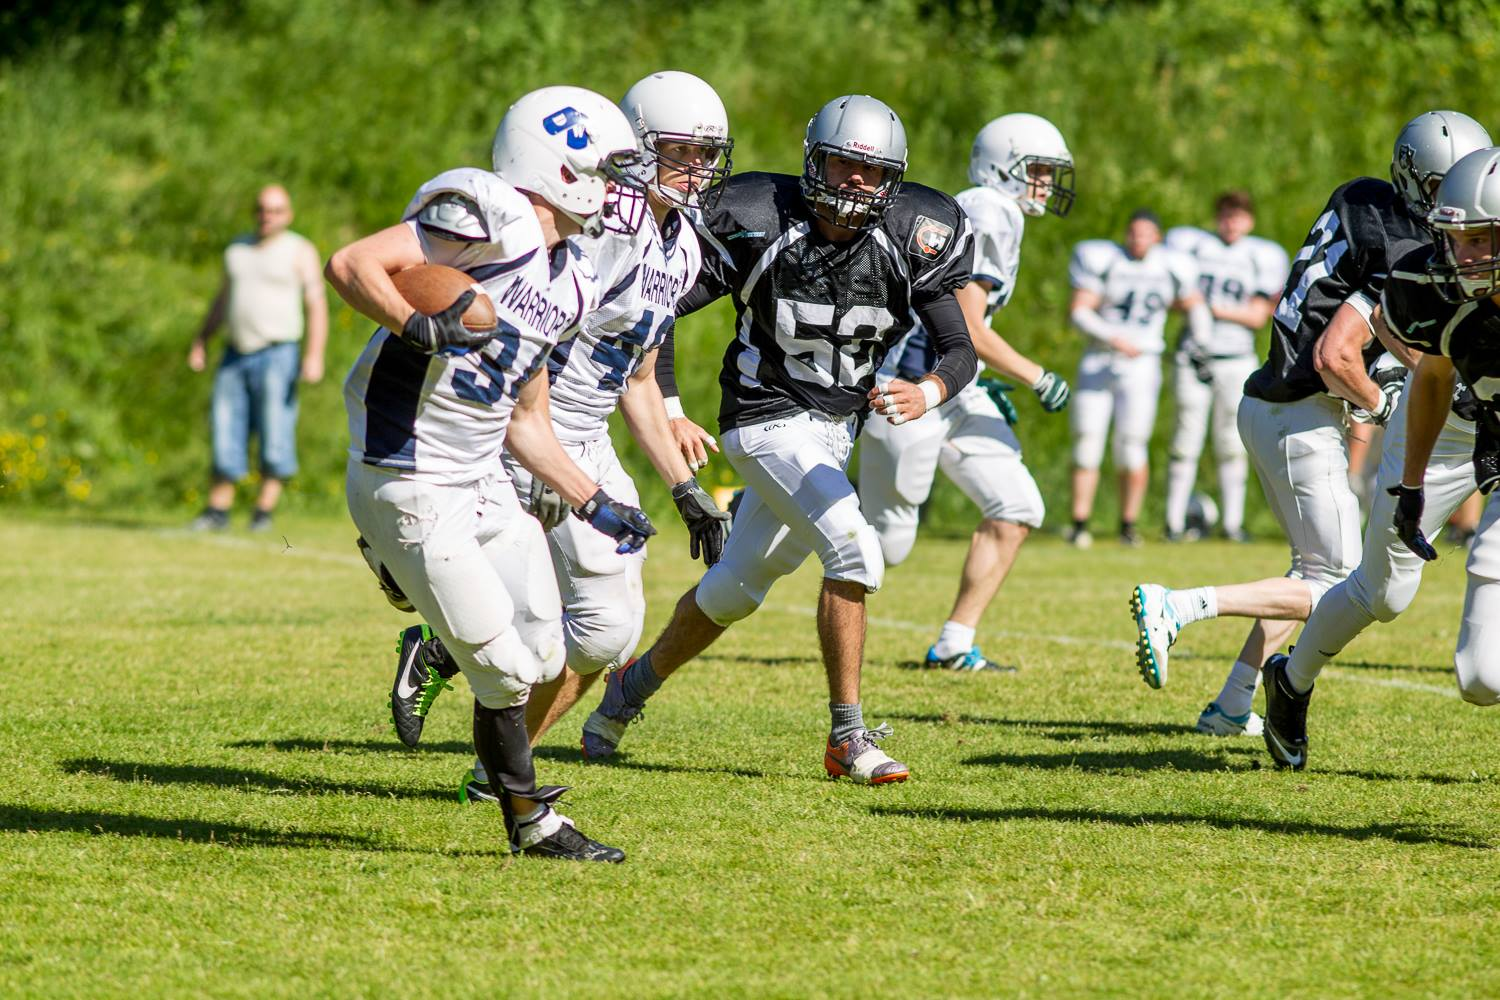 Drammen Warriors at Tønsberg Raiders 2014 - foto av Bjørn Tore Manuel Emanuelson